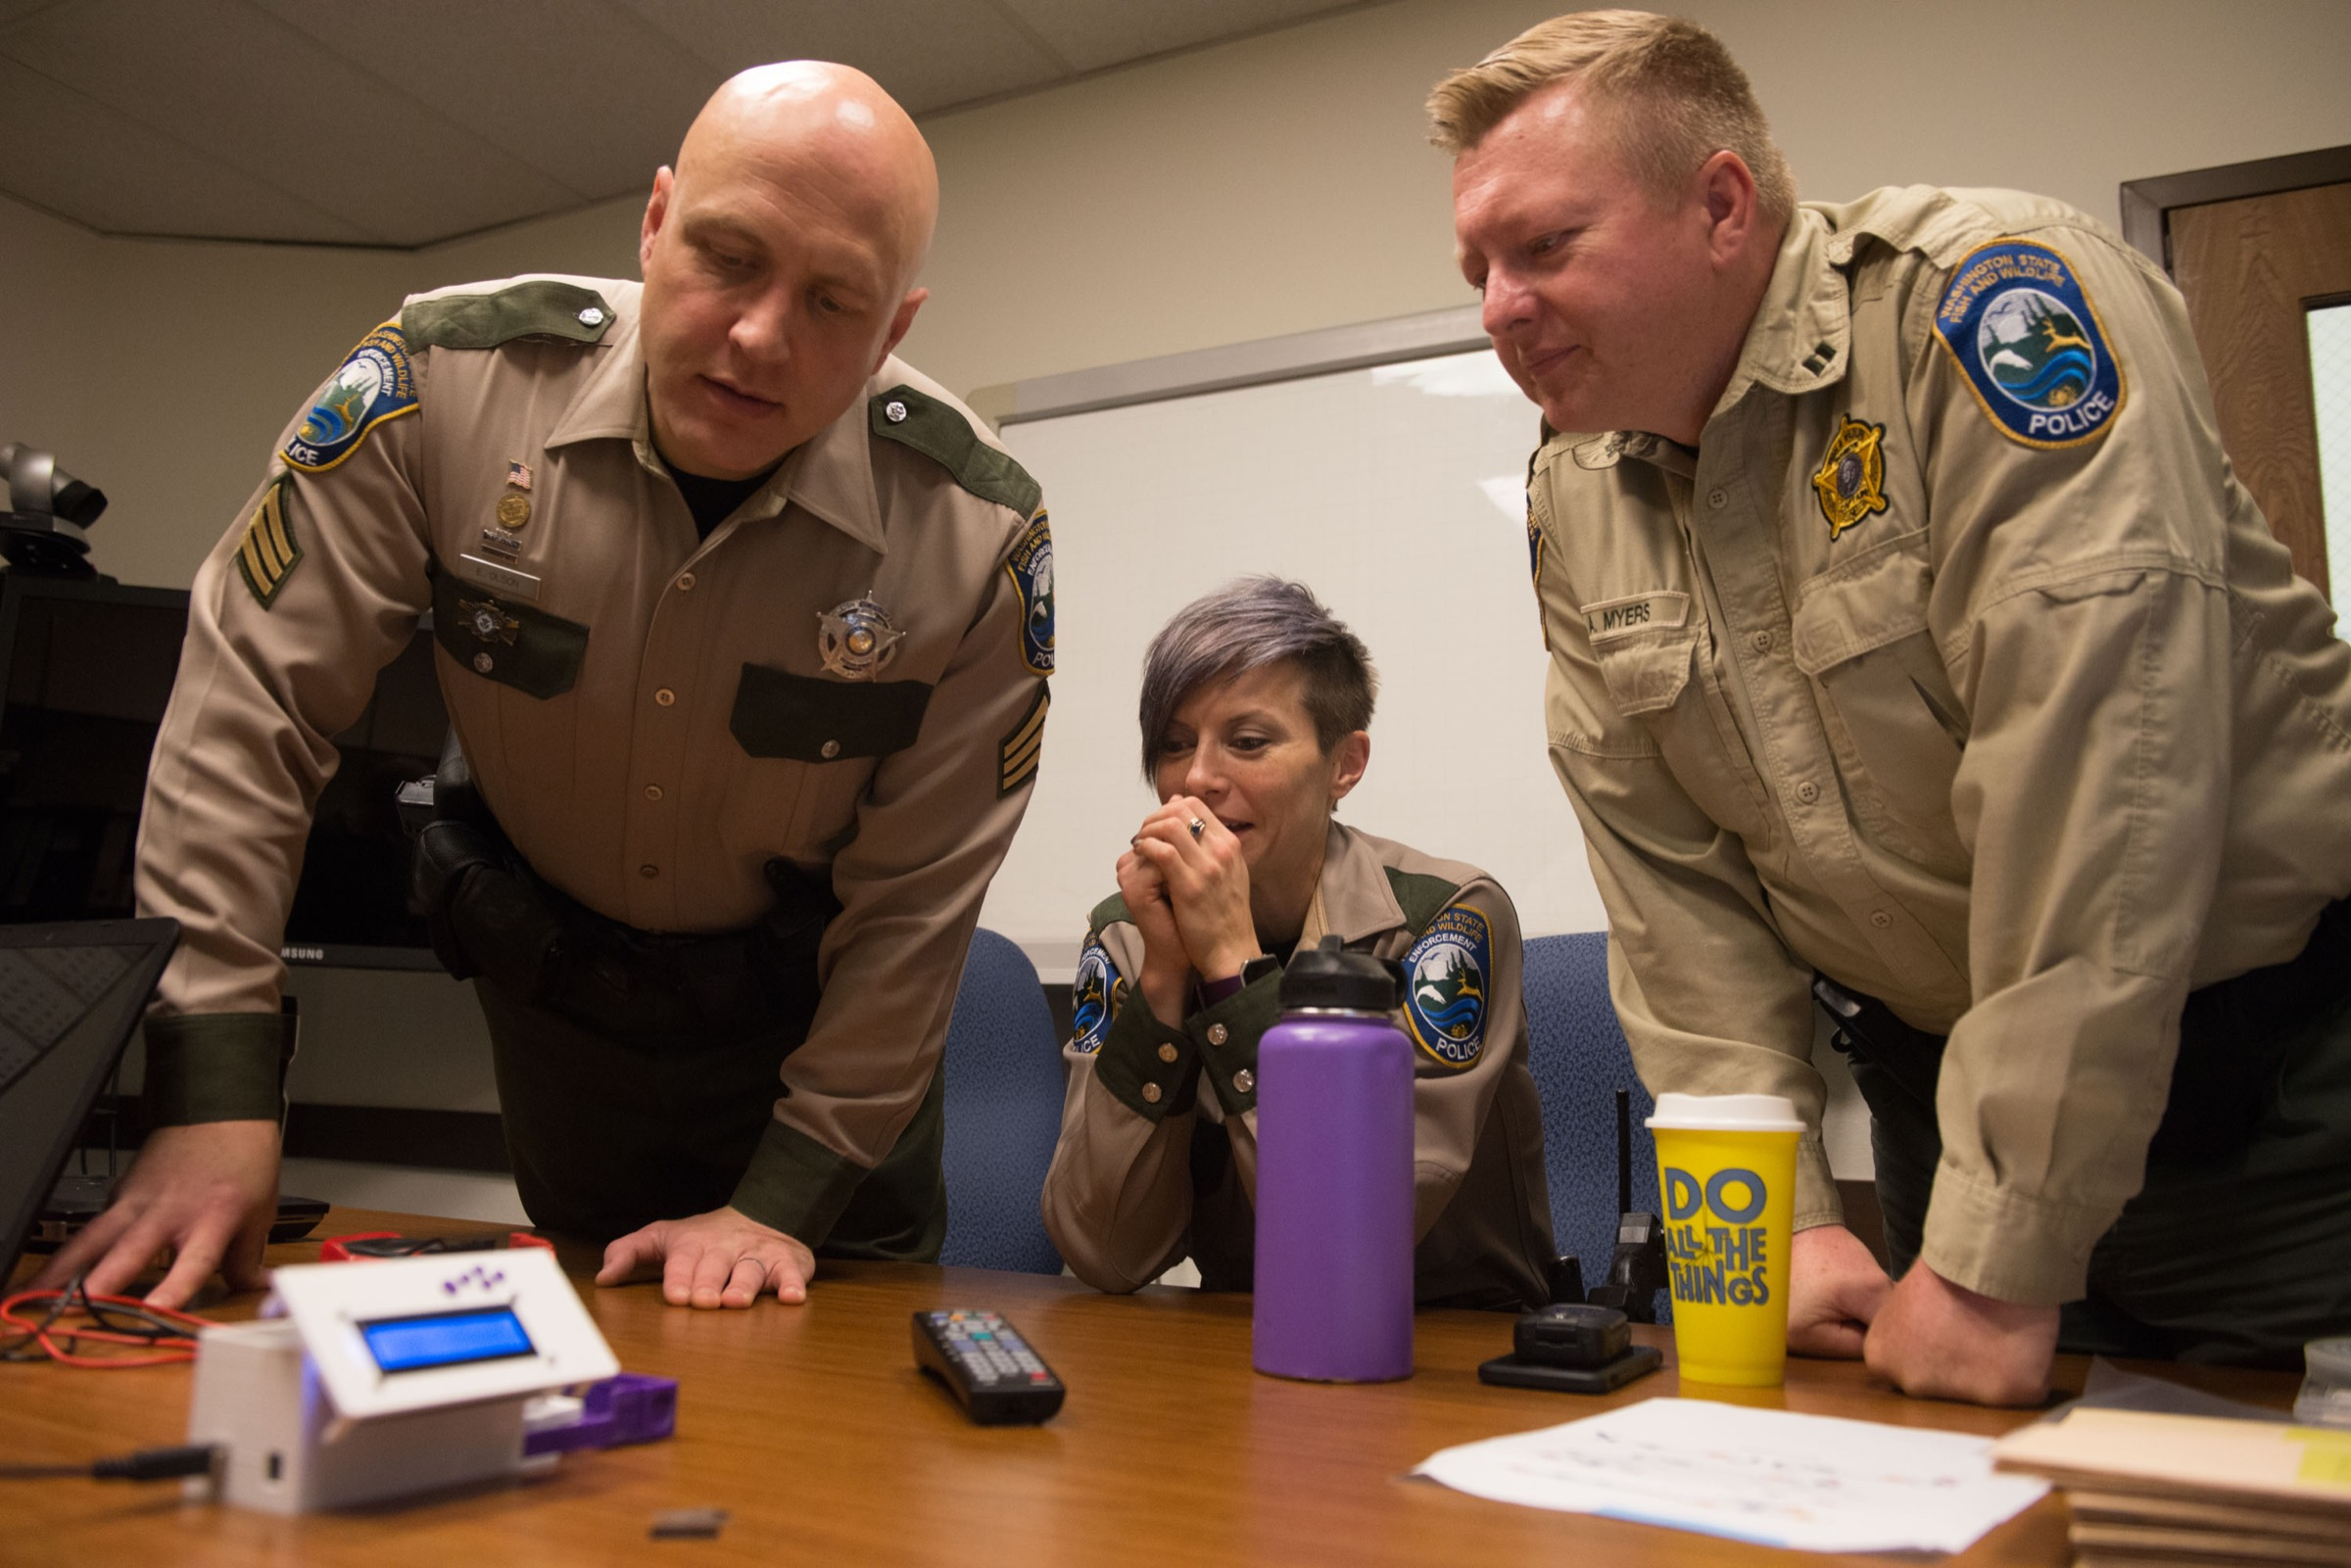 Sergeant Erik Olson, Officer Tylar Stephenson and Captain Alan Myers inspect the DNA barcode scanner during a test run. Photograph by Daniel Berman